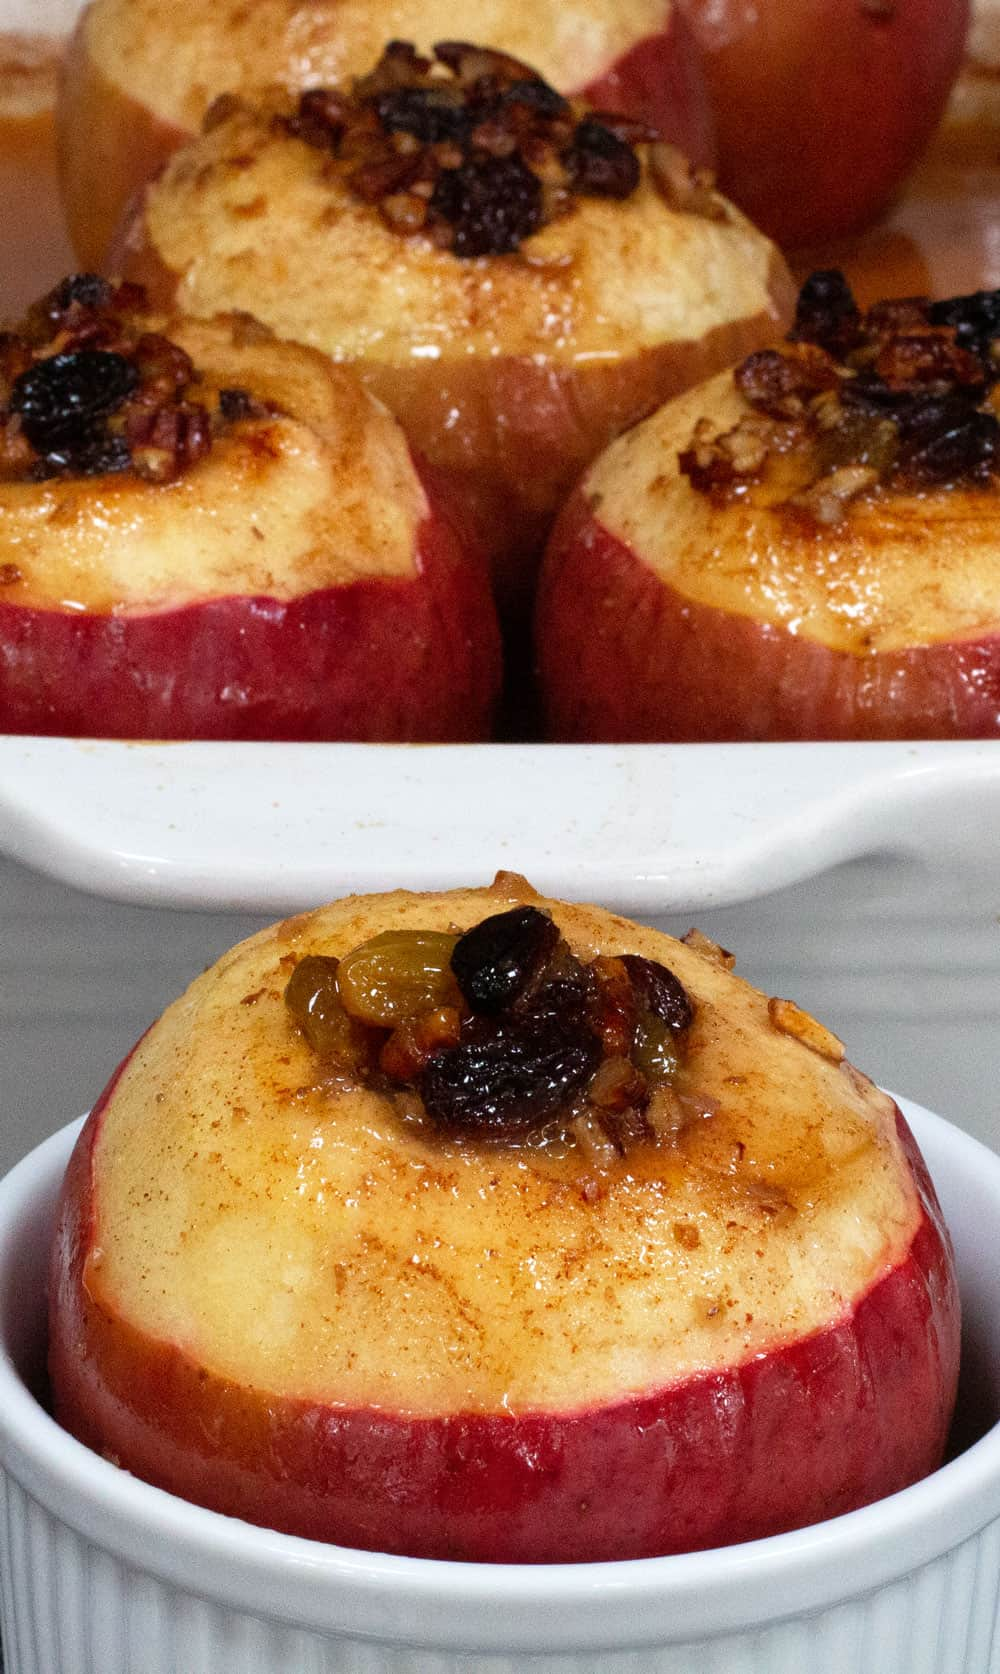 Simple oven-baked apple in a ramekin front of a baking dish with other baked apples